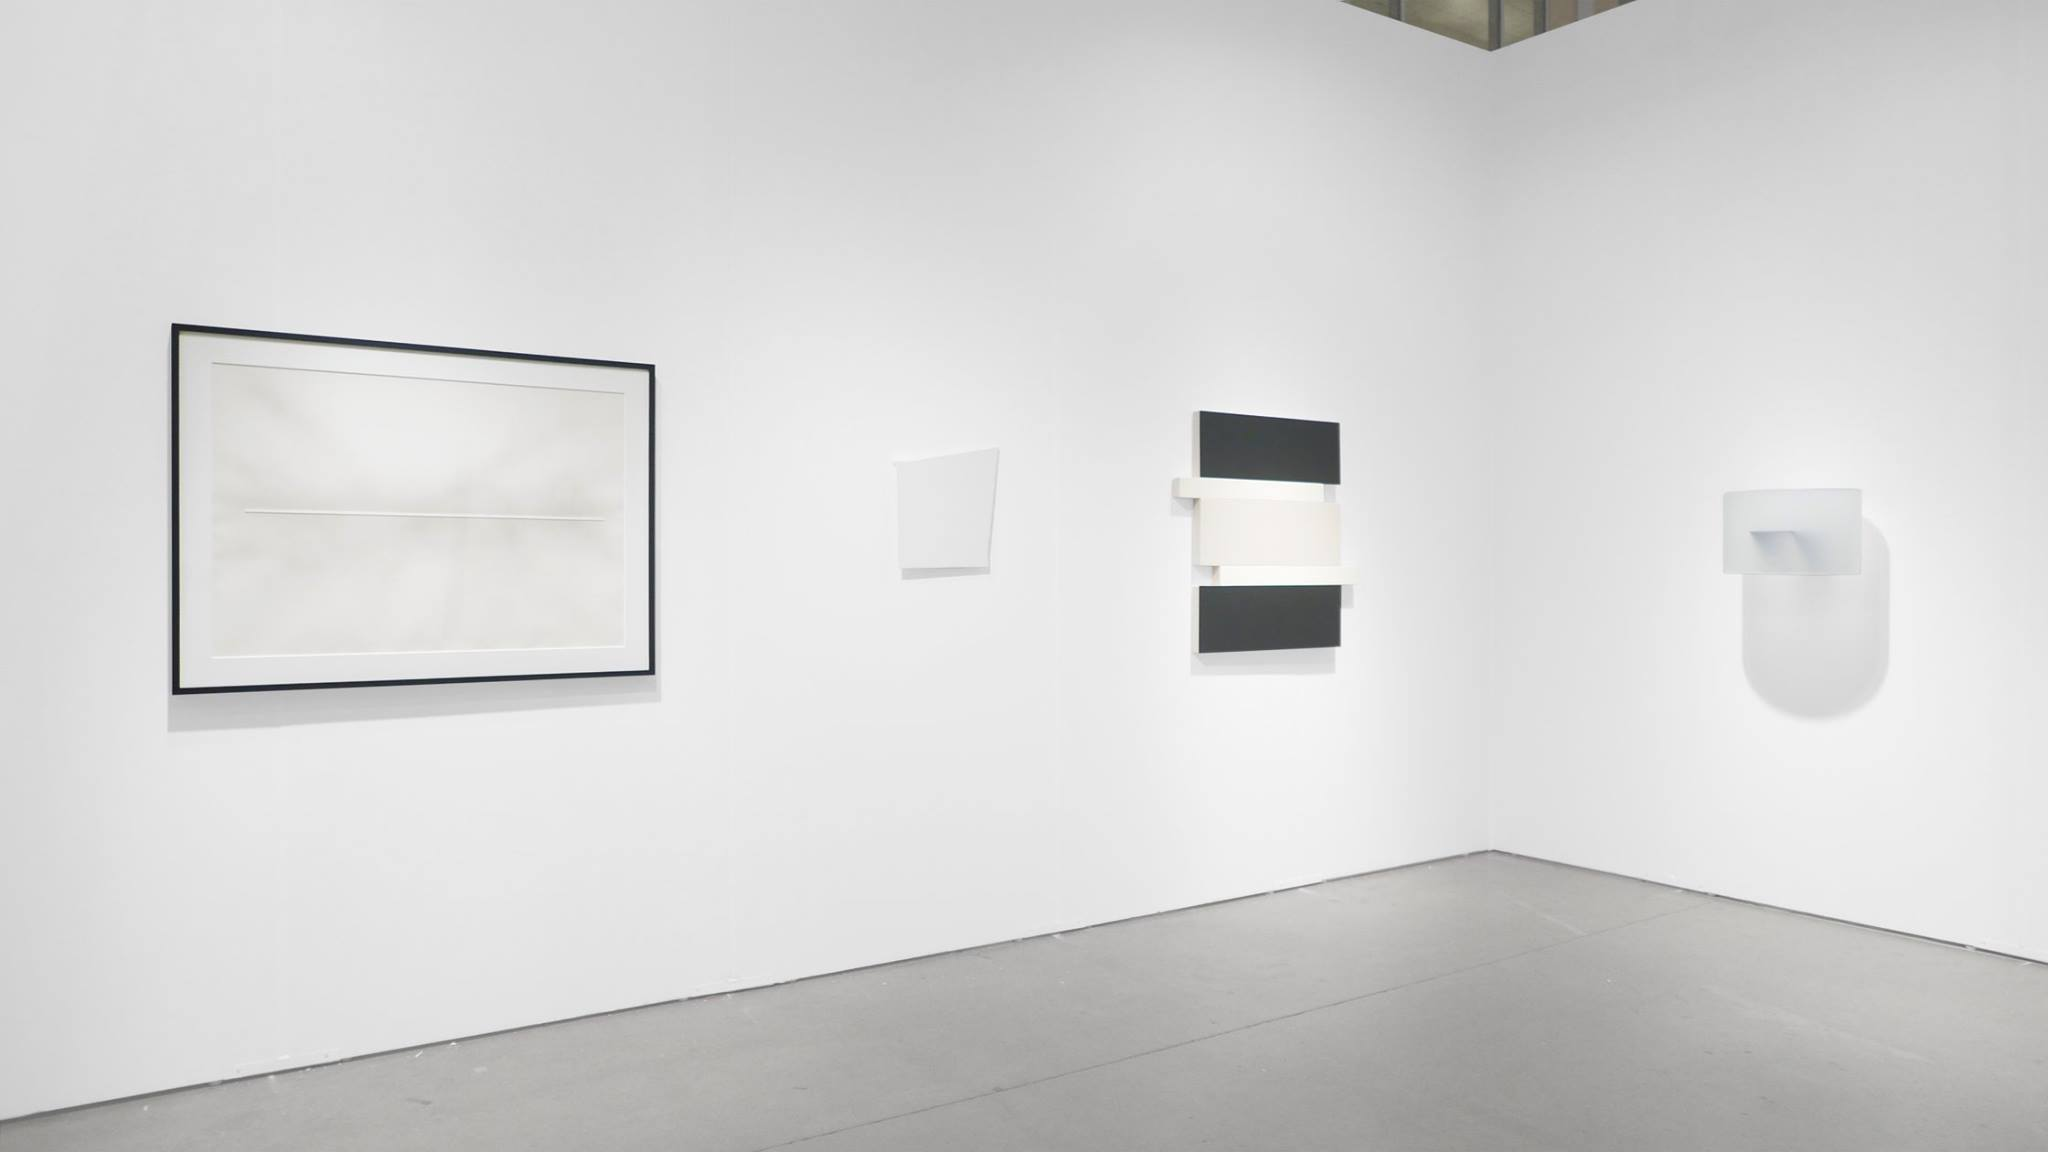 EXPO Chicago 2016, Peter Blake Gallery Booth 702, Installation View_6.jpg